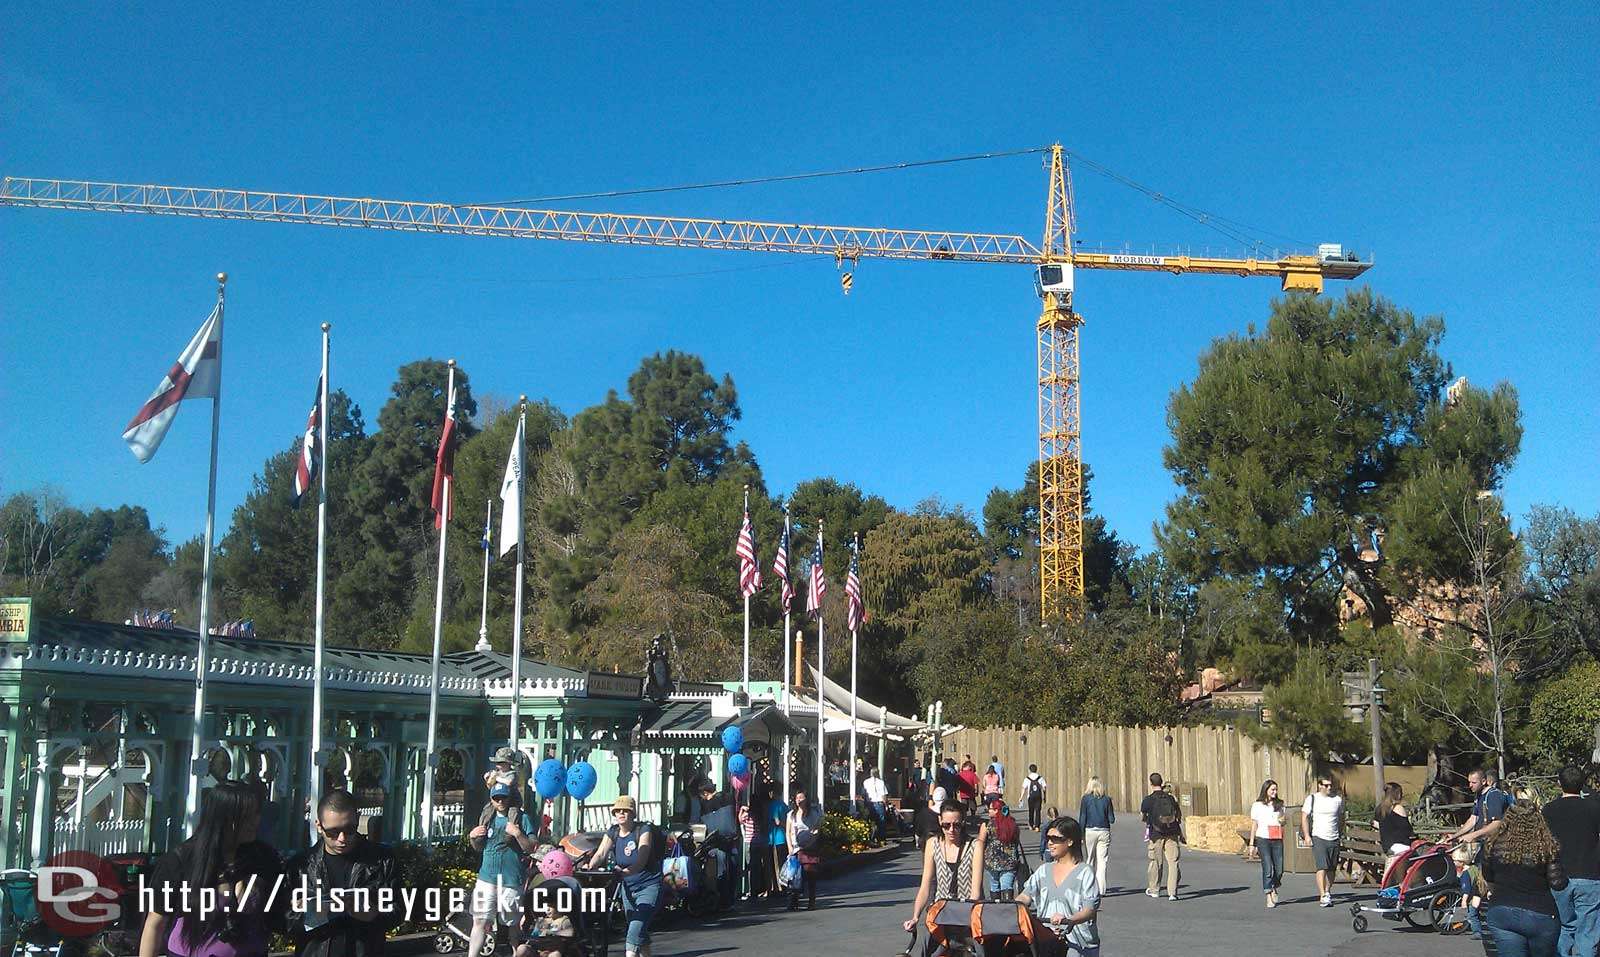 A large tower crane is in place for the Big Thunder work.